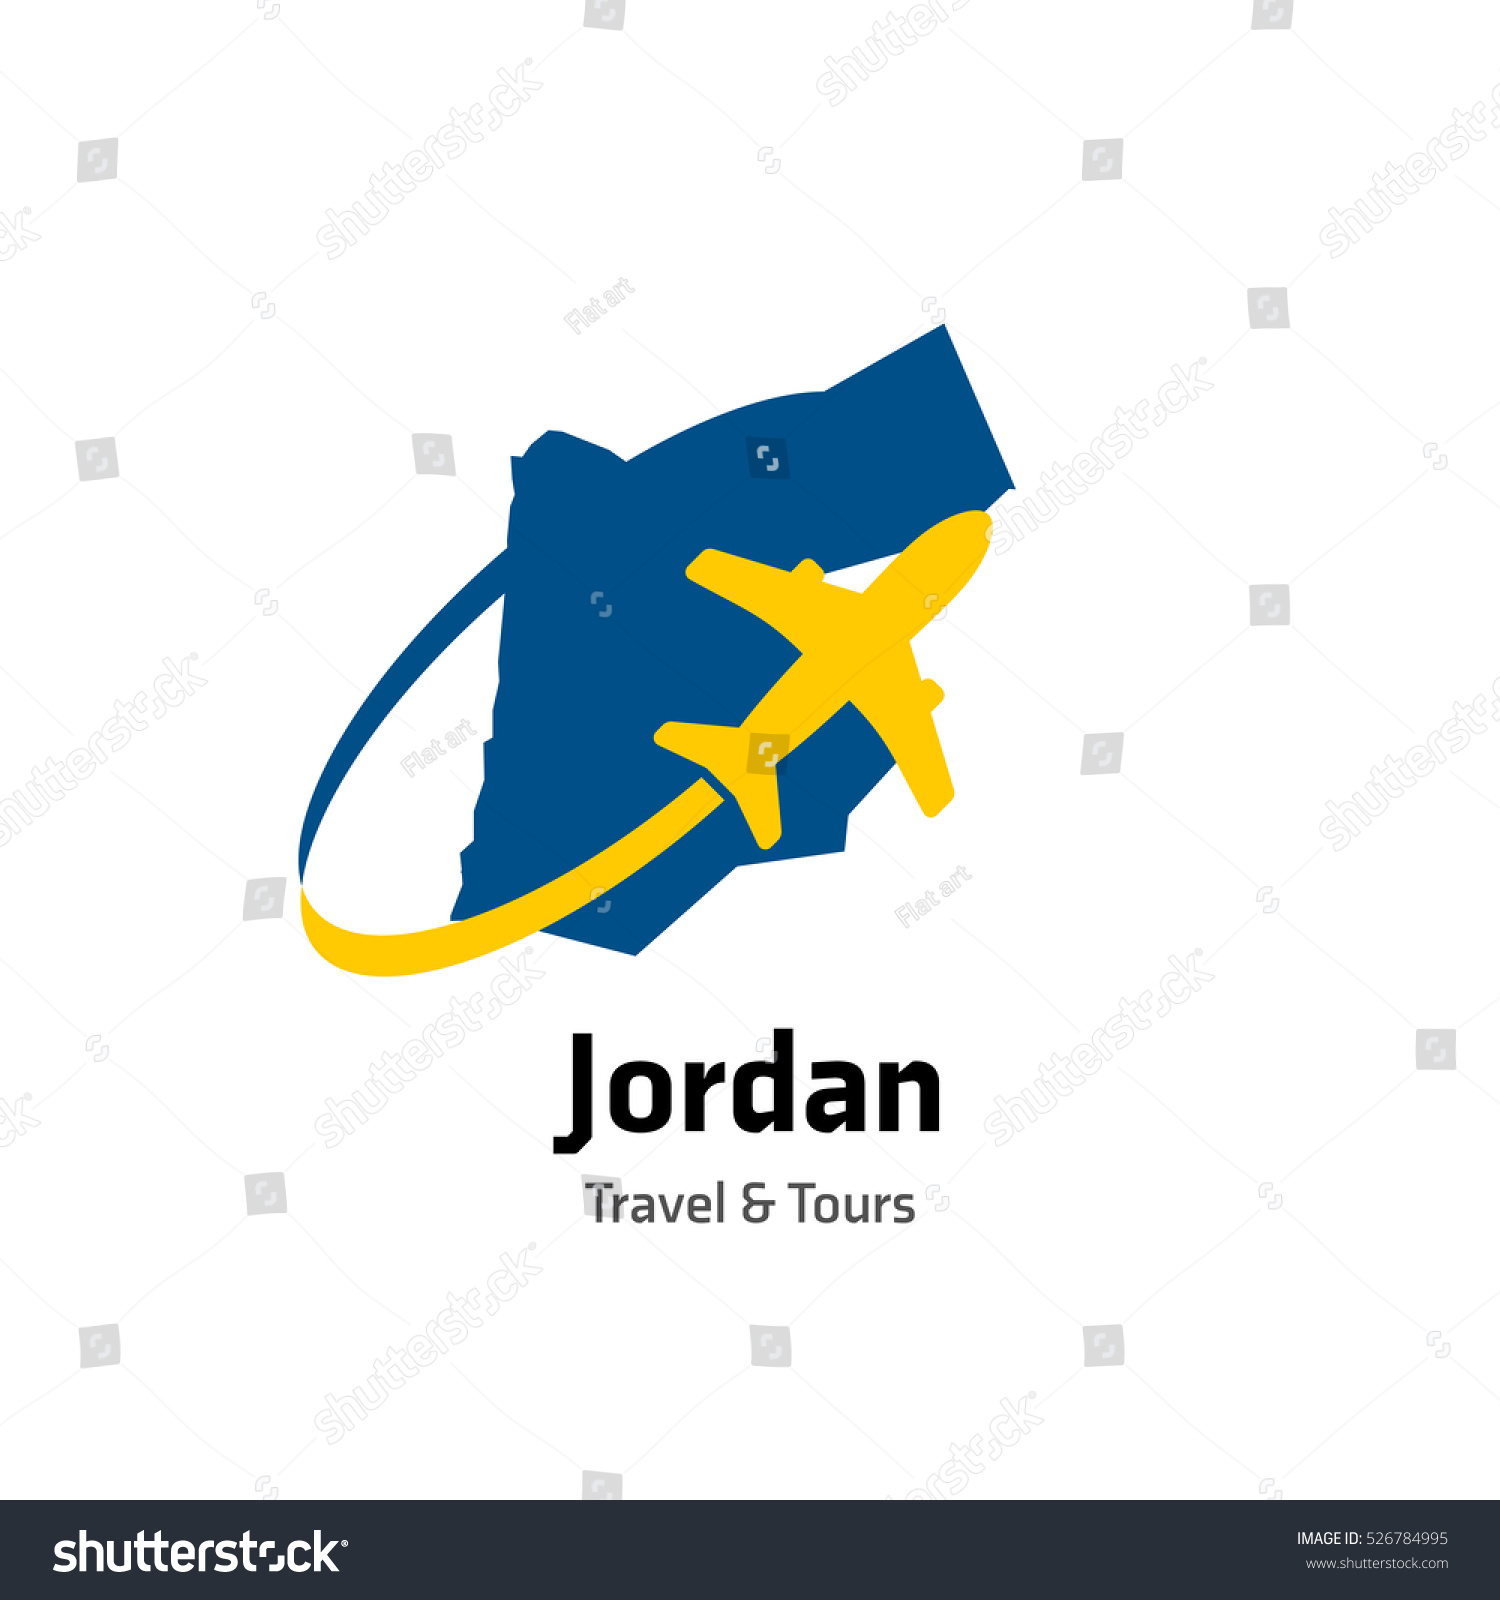 Jordan travel tours logo vector travel stock vector 526784995 jordan travel and tours logo vector travel company logo design country map leisure travel biocorpaavc Gallery